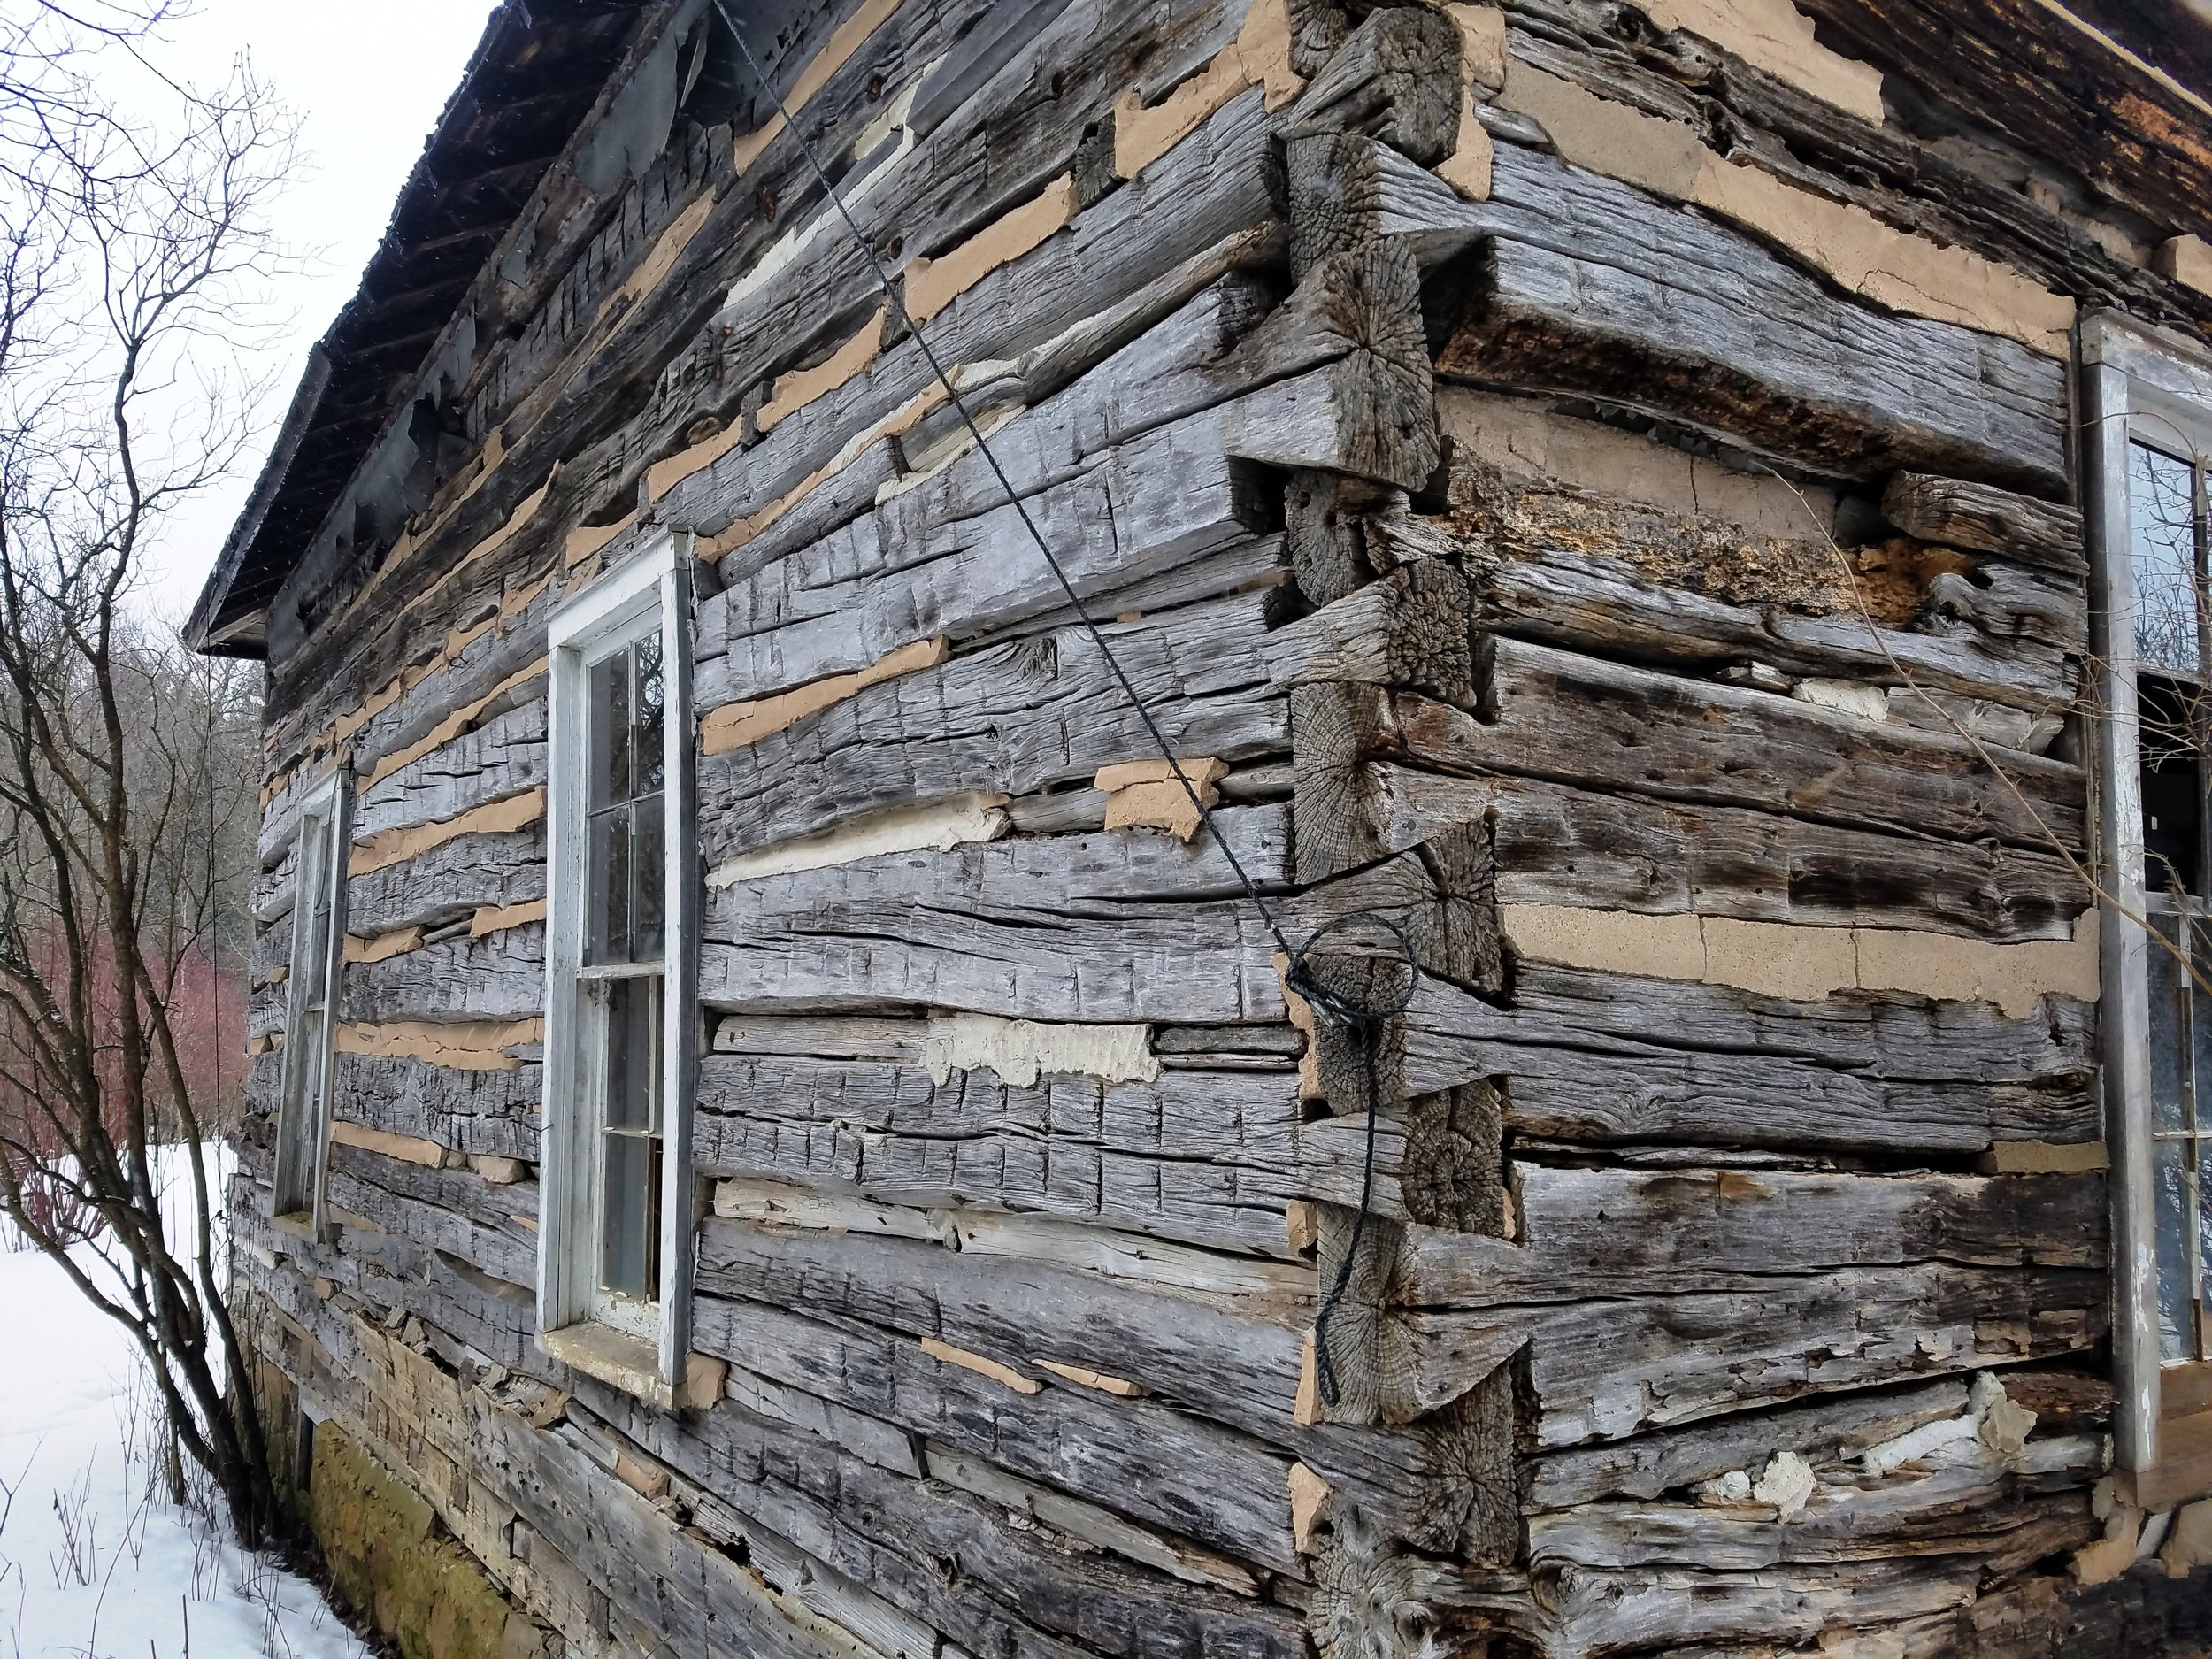 In the late 1850's a French Fur Trader built this log home along the  Wisconsin River and raised his family of five.  This structure was  disassembled and numbered log by log.  Now, it is rebuilt into an arts  and crafts center as part of a day care operation located in Rice Lake,  WI